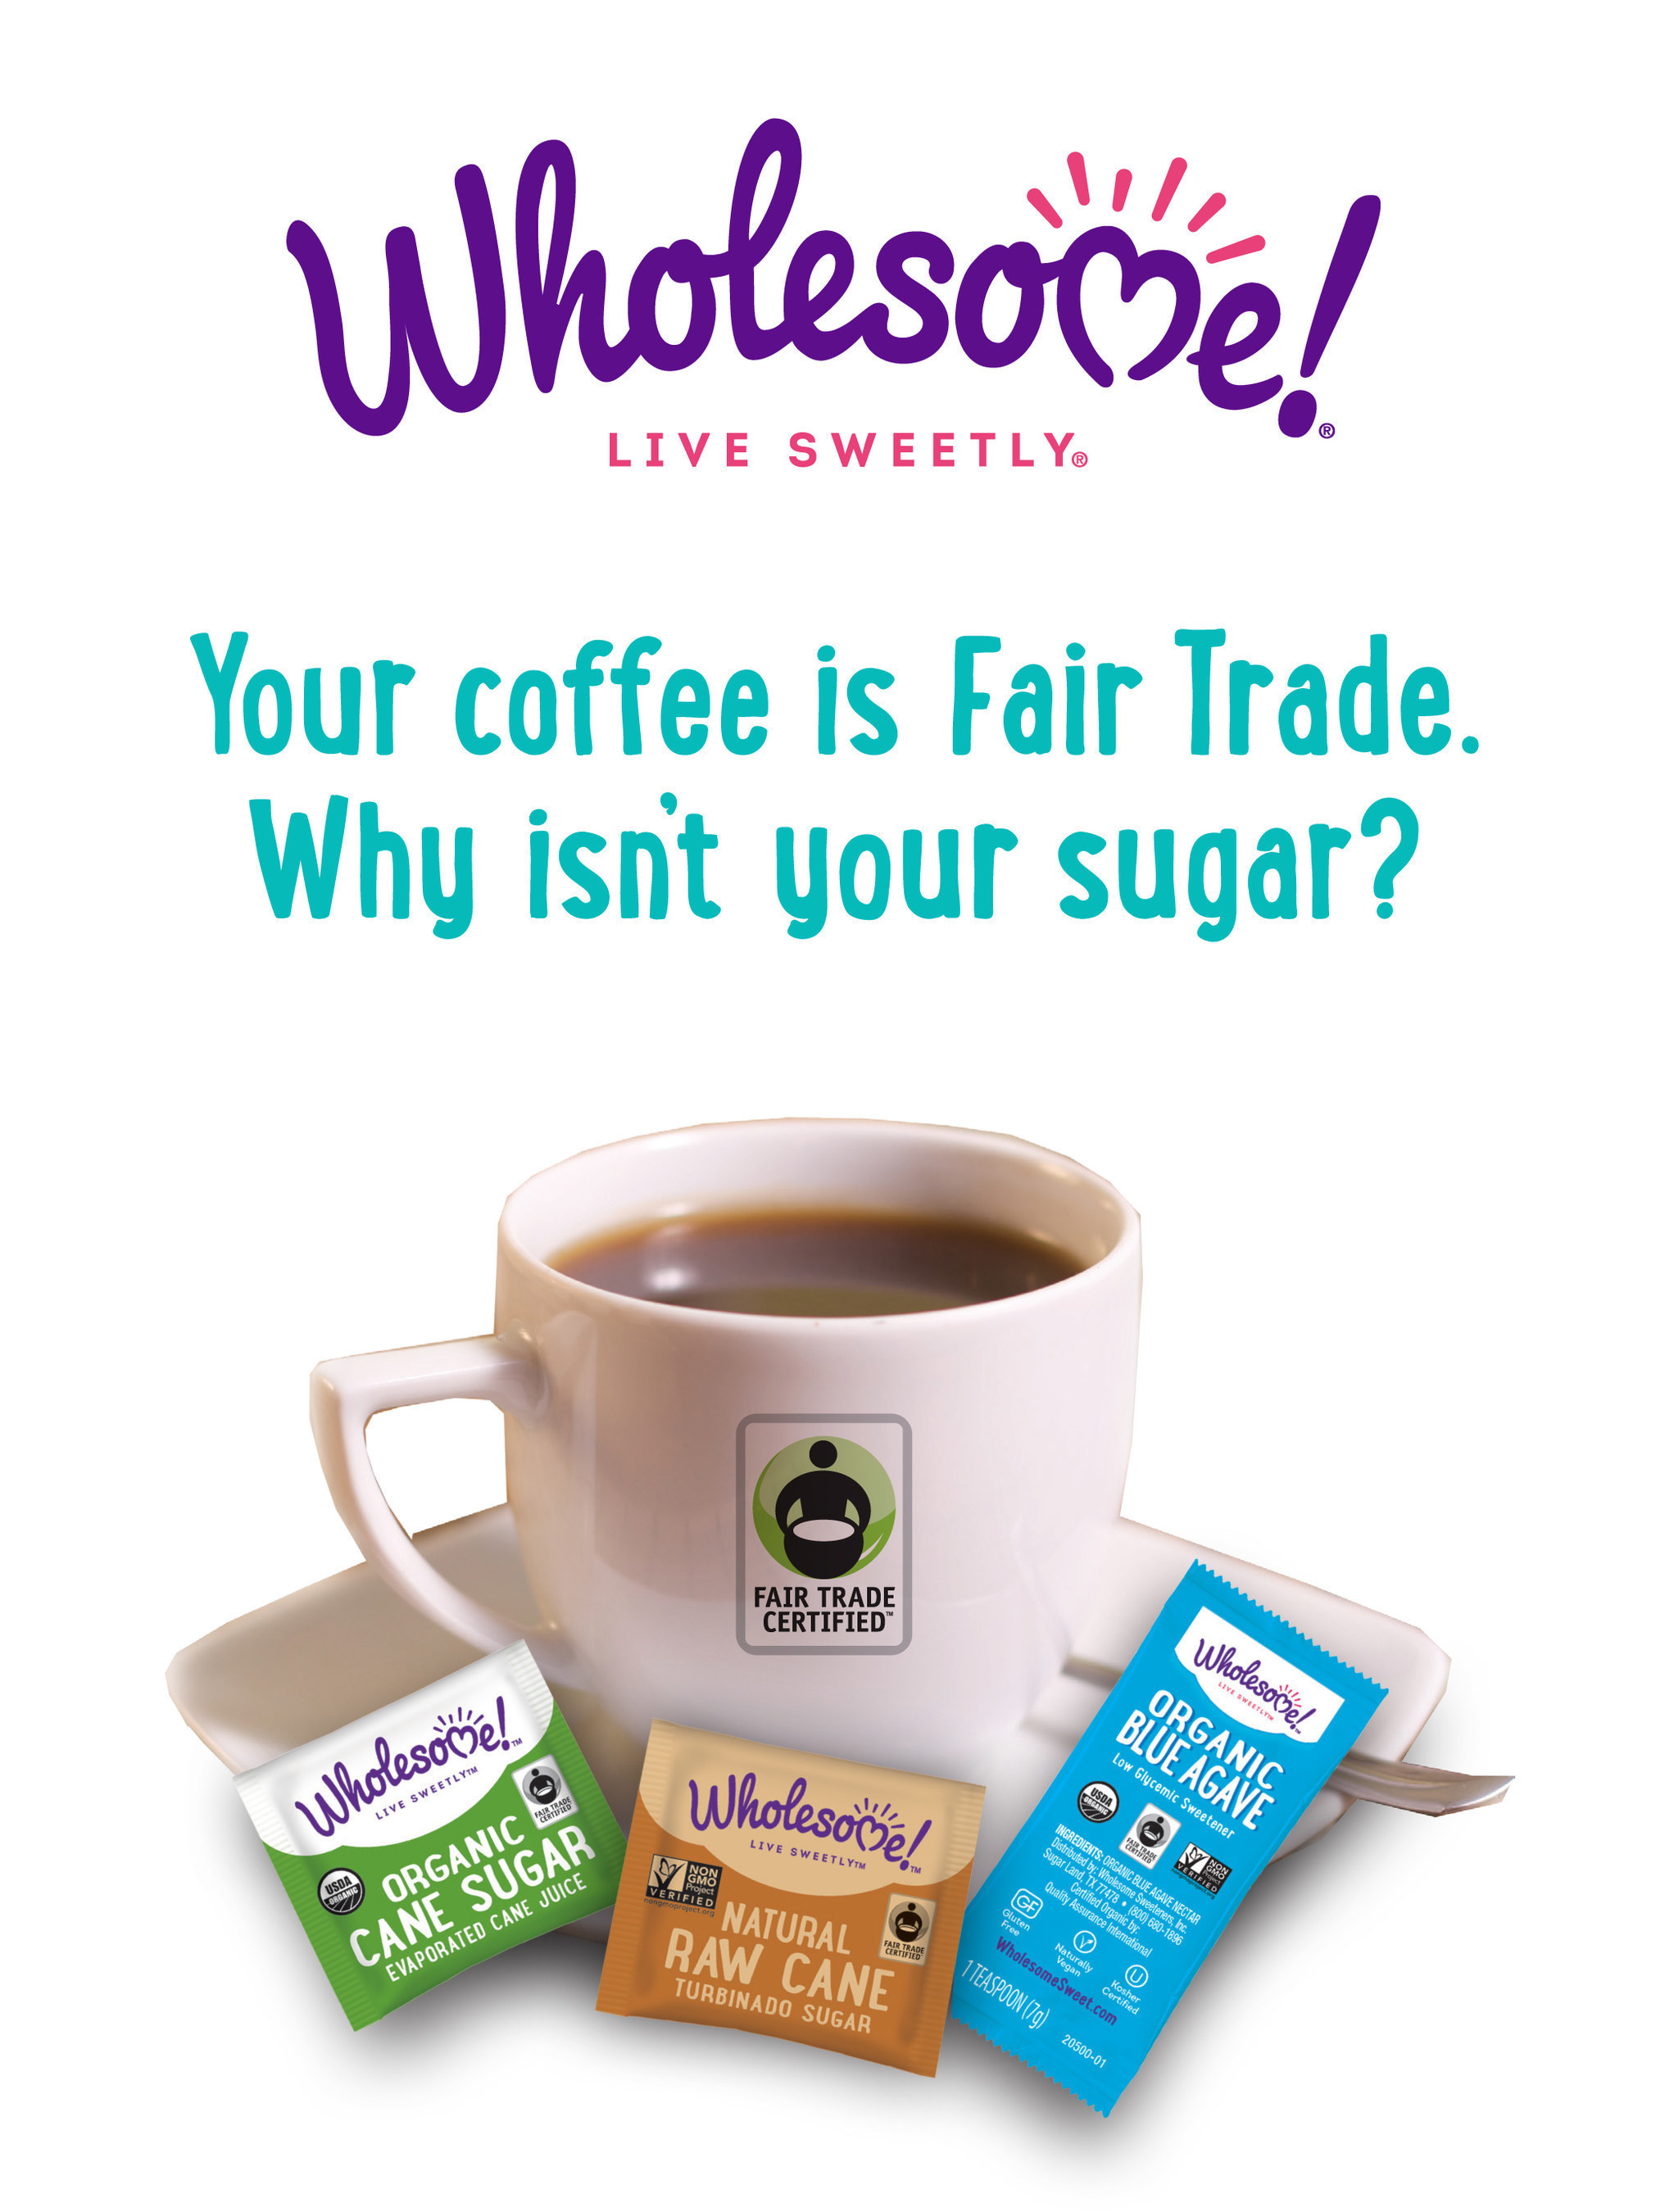 Coffee is one of the most popular morning beverages in America. In recent years, it has also become a powerful tool for boosting awareness about Fair Trade. It began a conversation among consumers, especially the millennial generation, to spark global change and use the power of their purchases to positively impact the lives of farmers around the world. Why stop at just Fair Trade coffee? With World Fair Trade Day on May 14, Wholesome!(R), the leading provider of Fair Trade organic sugar, agave and...